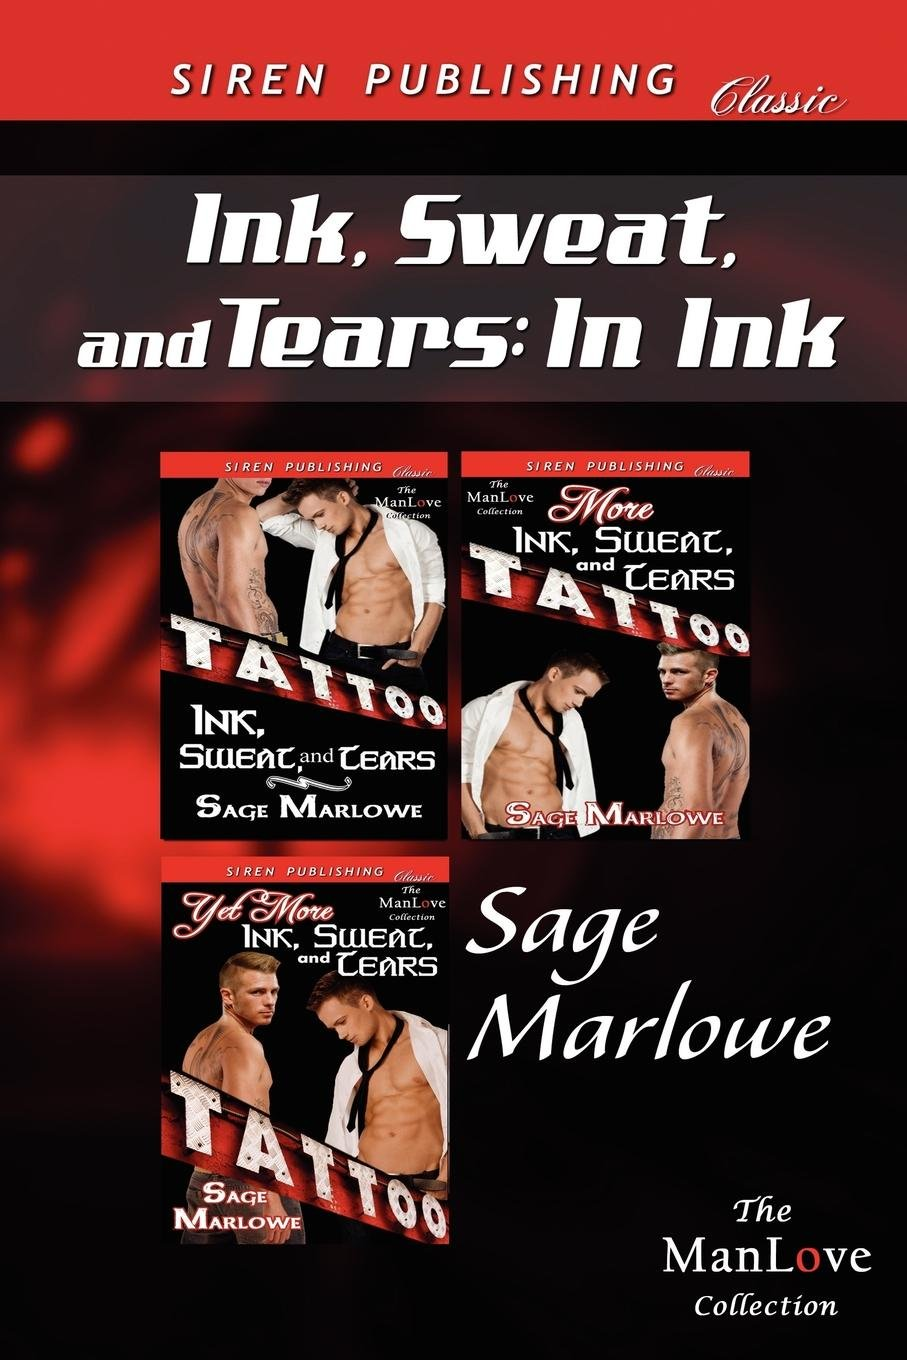 Download Ink, Sweat, and Tears: In Ink [Ink, Sweat, and Tears: More Ink, Sweat, and Tears: Yet More Ink, Sweat, and Tears] (Siren Publishing Classic M (Siren Publishing Classic: the Manlove Collection) ebook